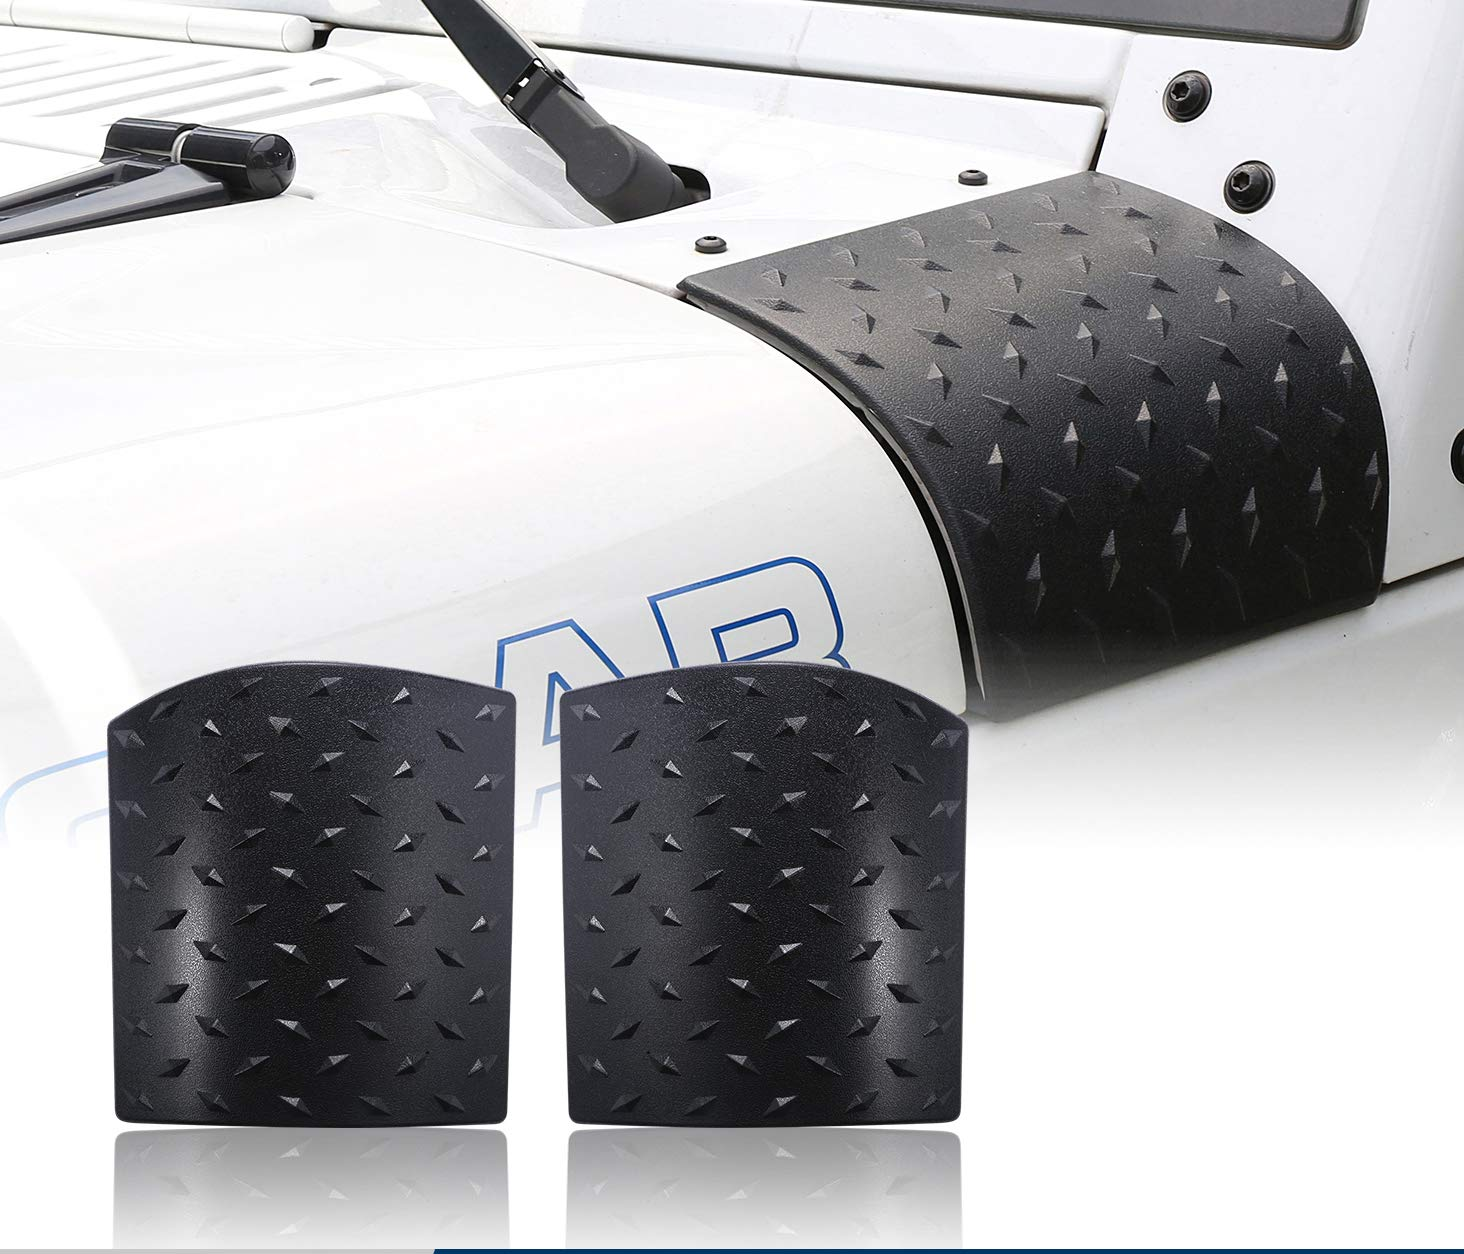 u-Box Jeep Wrangler Black Cowl Body Armor Outer Cowling Cover for 2007-2018 JK & Unlimited - Pair